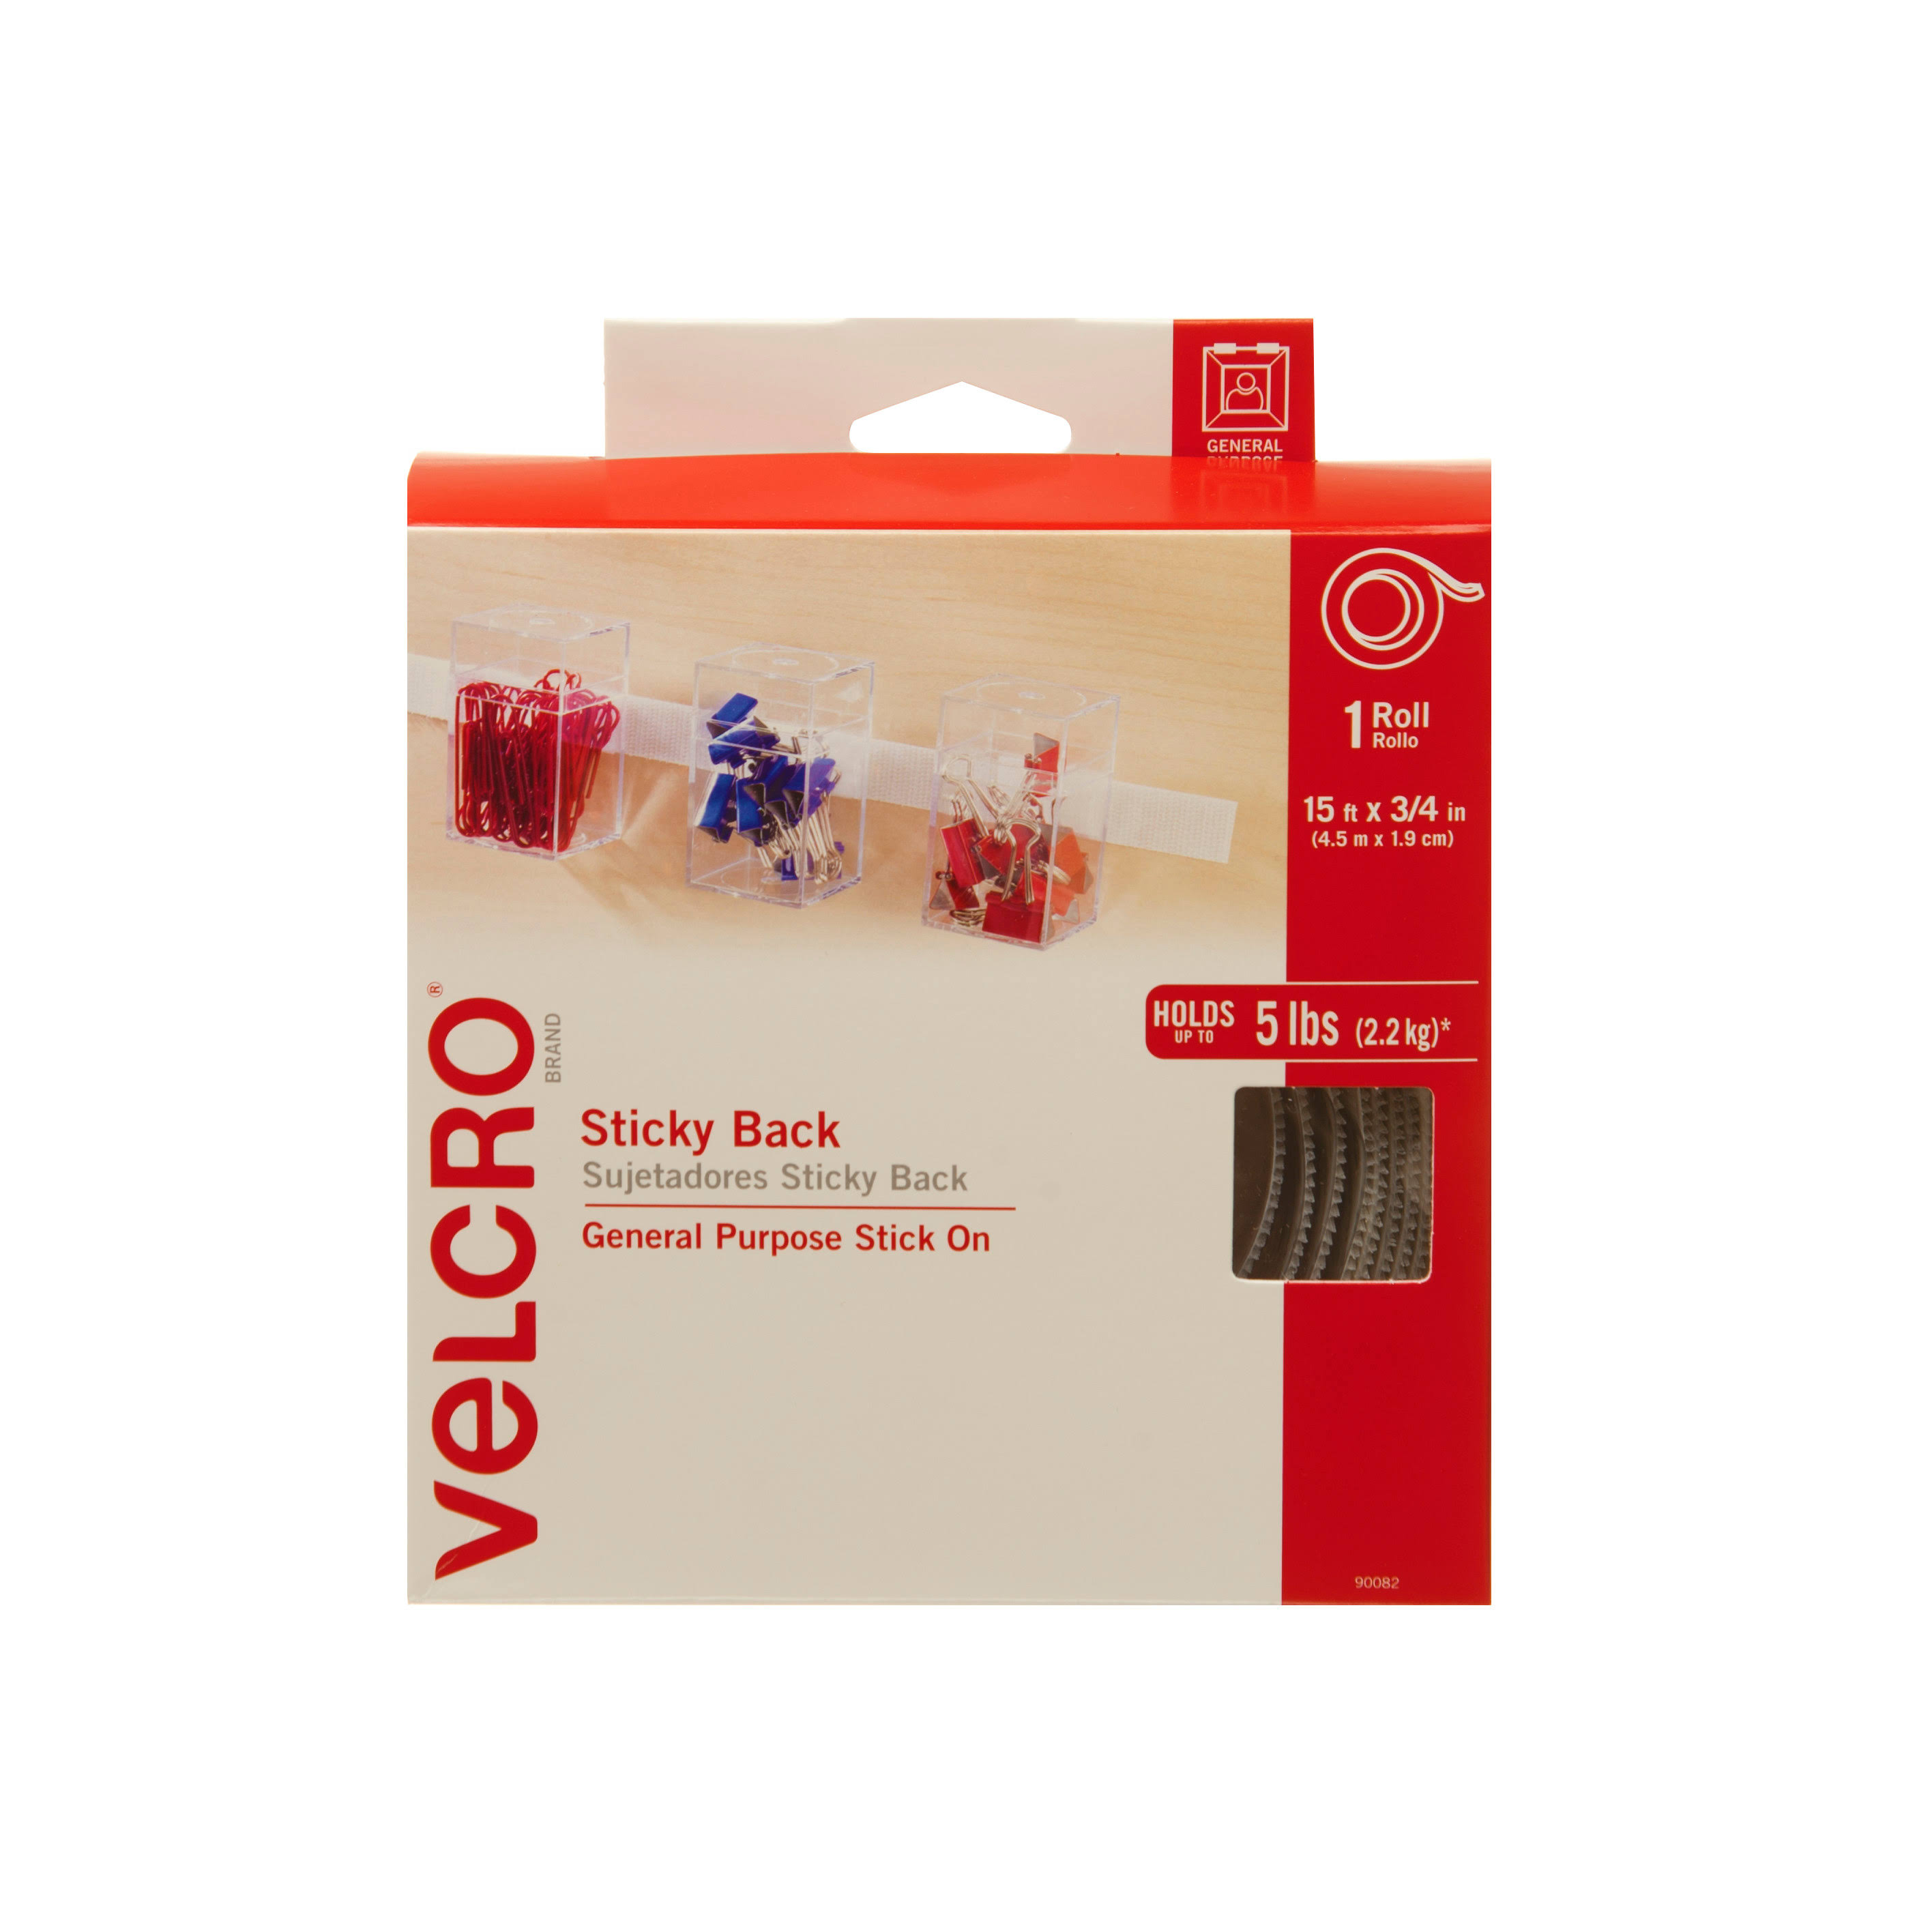 Velcro Sticky Back Tape - White, 15ft x 3/4in